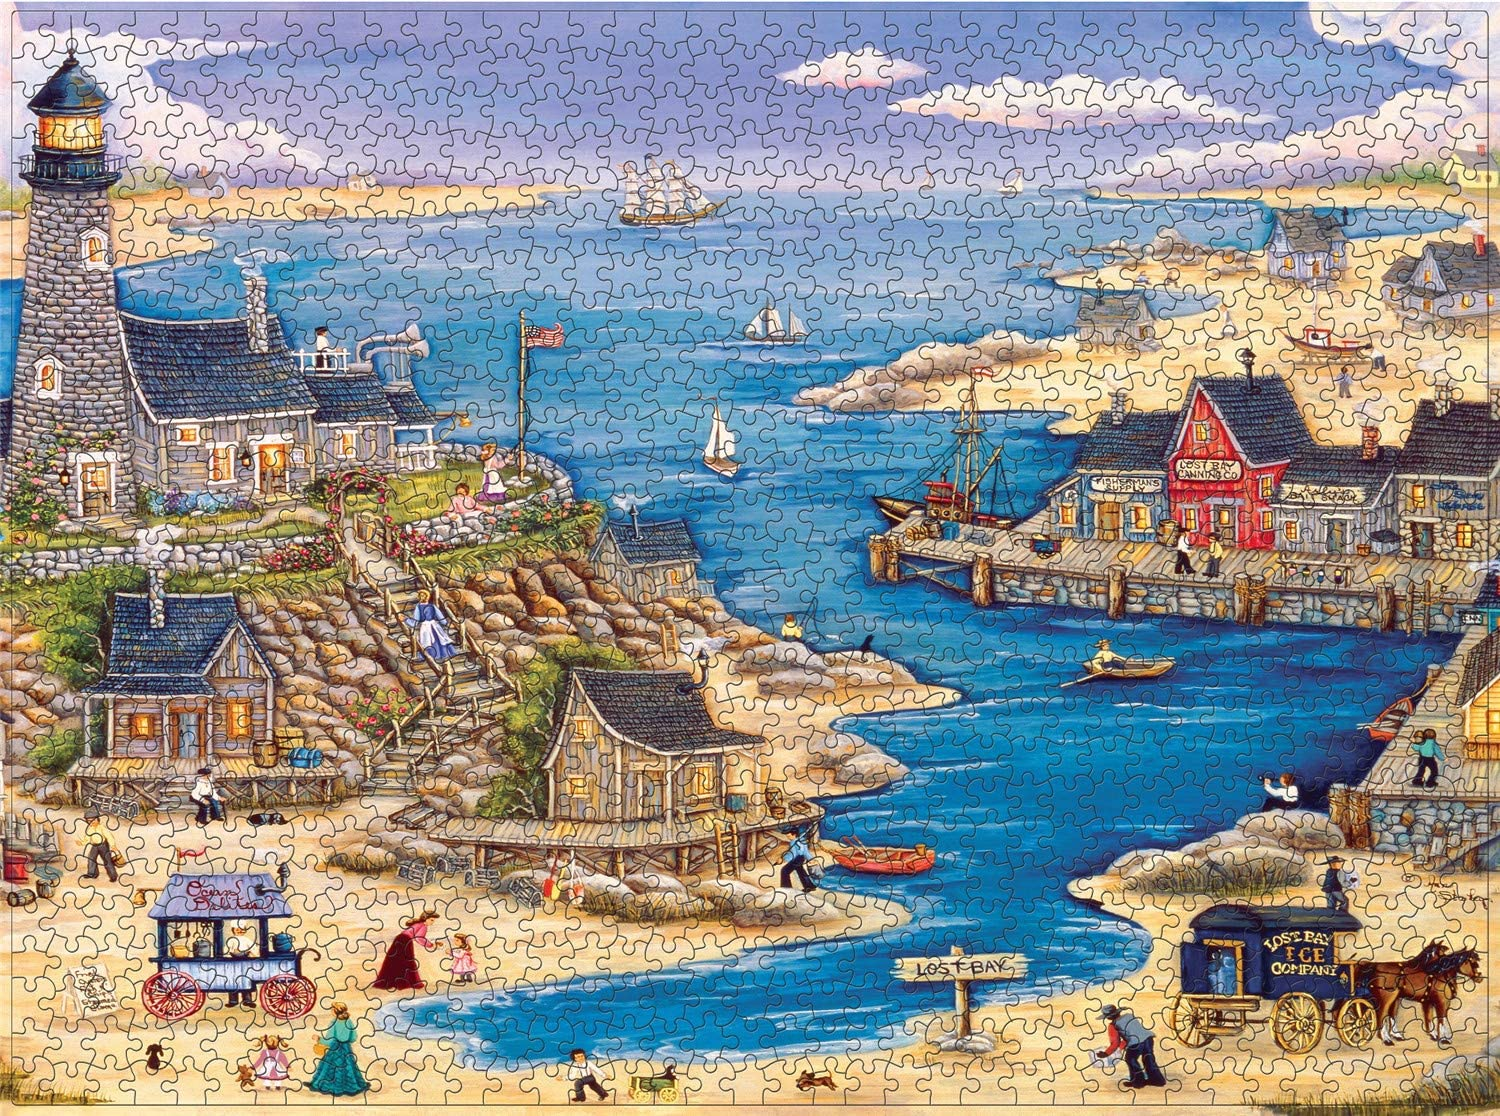 Seaside Village Jigsaw Puzzles for Adults 1000 Piece 27x20 inch,Ultra Difficult Challenge Decompression Adults Kids Puzzles Games,Large Landscape Artwork,Educational Family Puzzle Toys Gifts